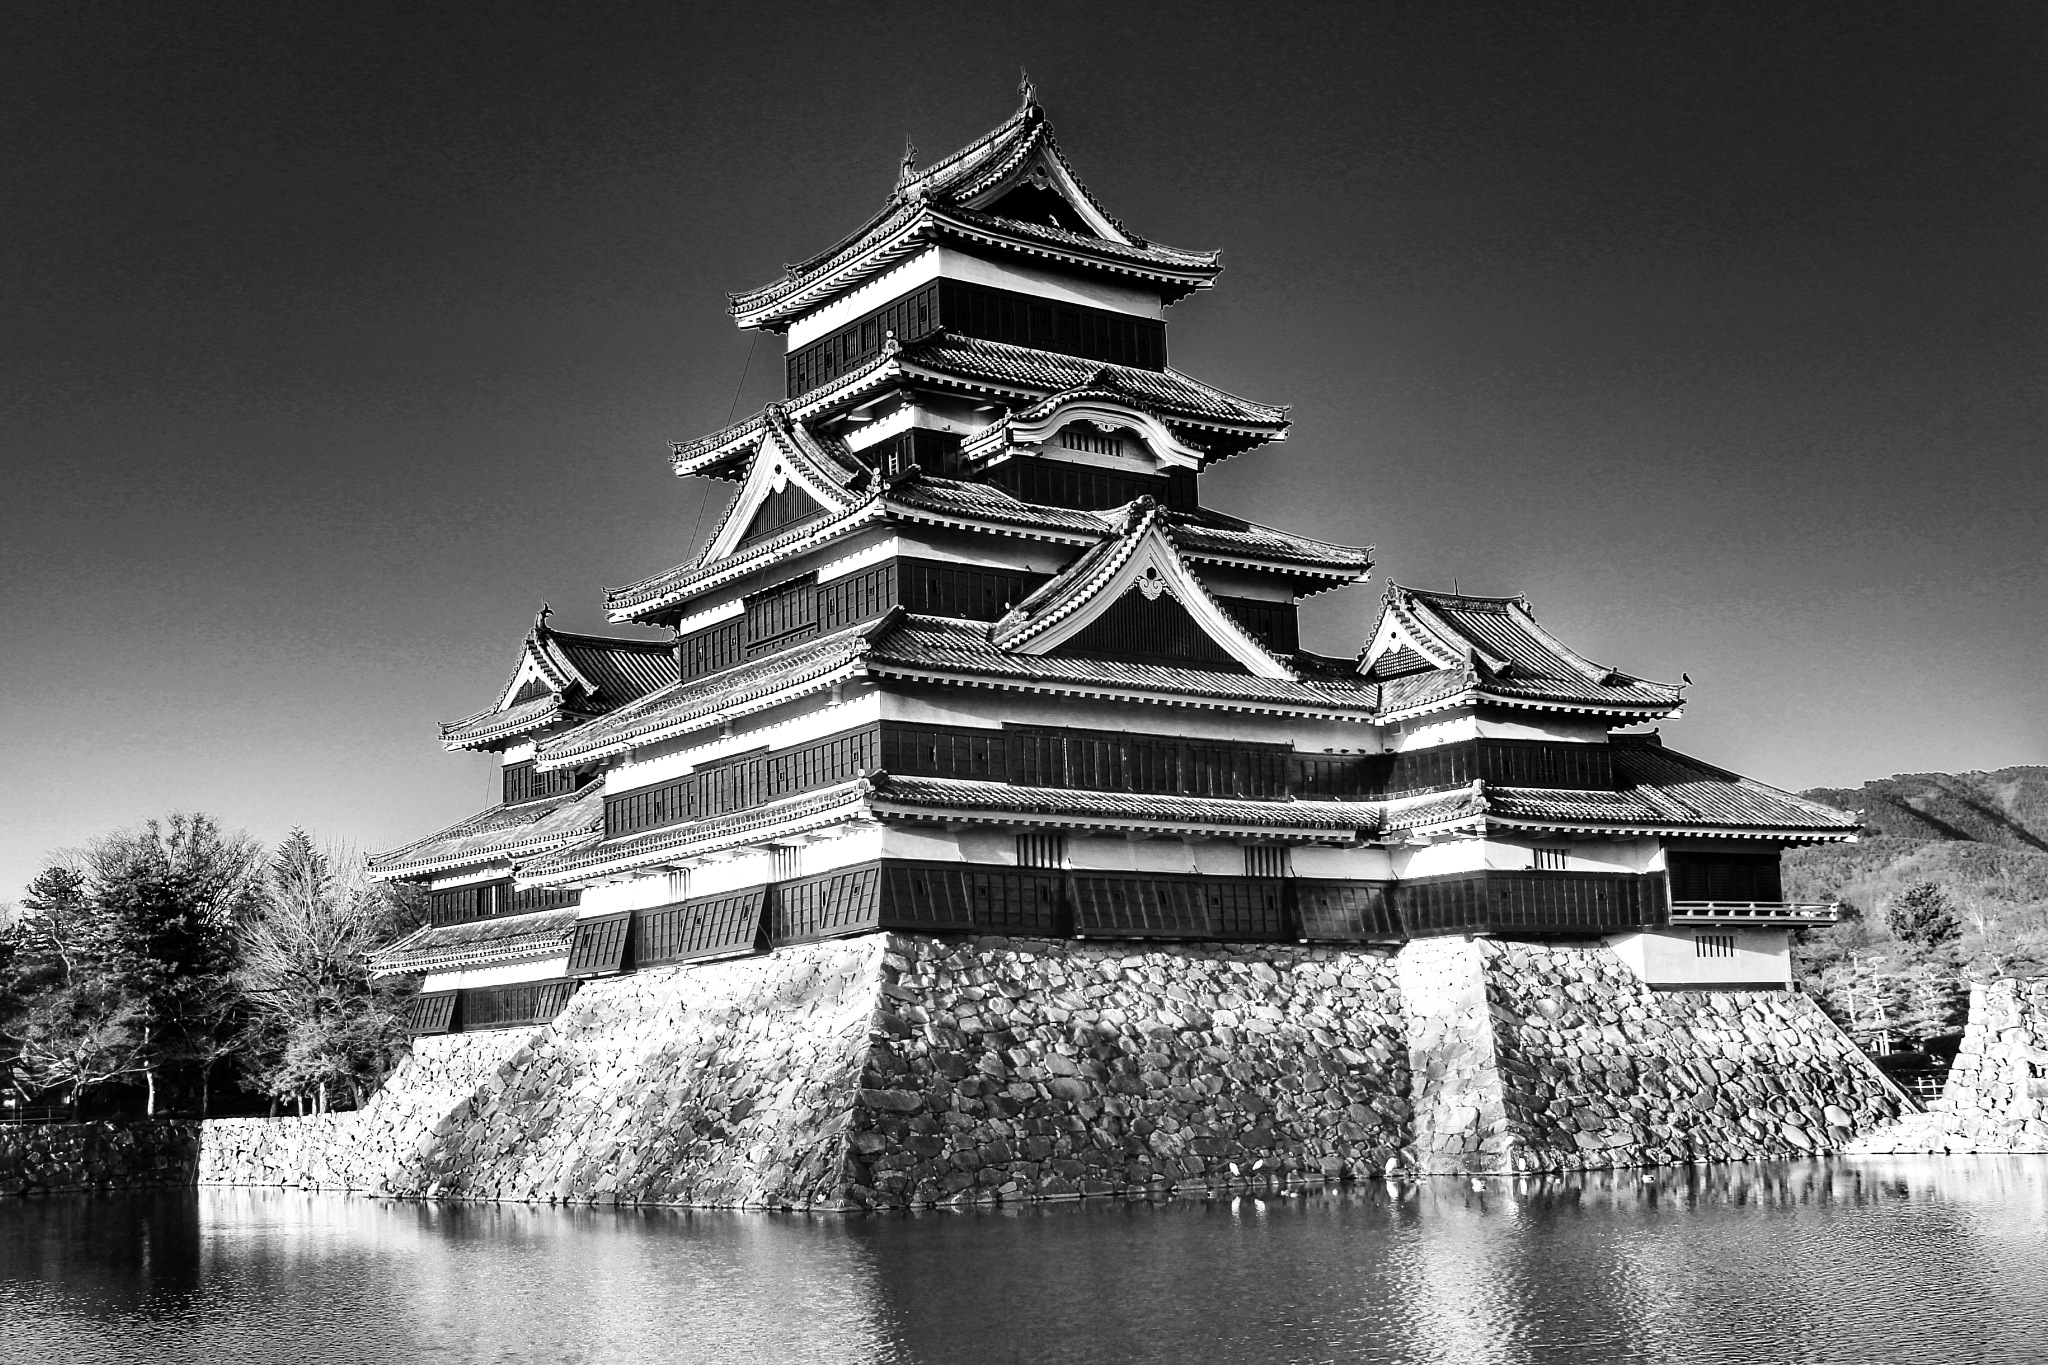 Matsumoto castle by Armed-with-a-smile